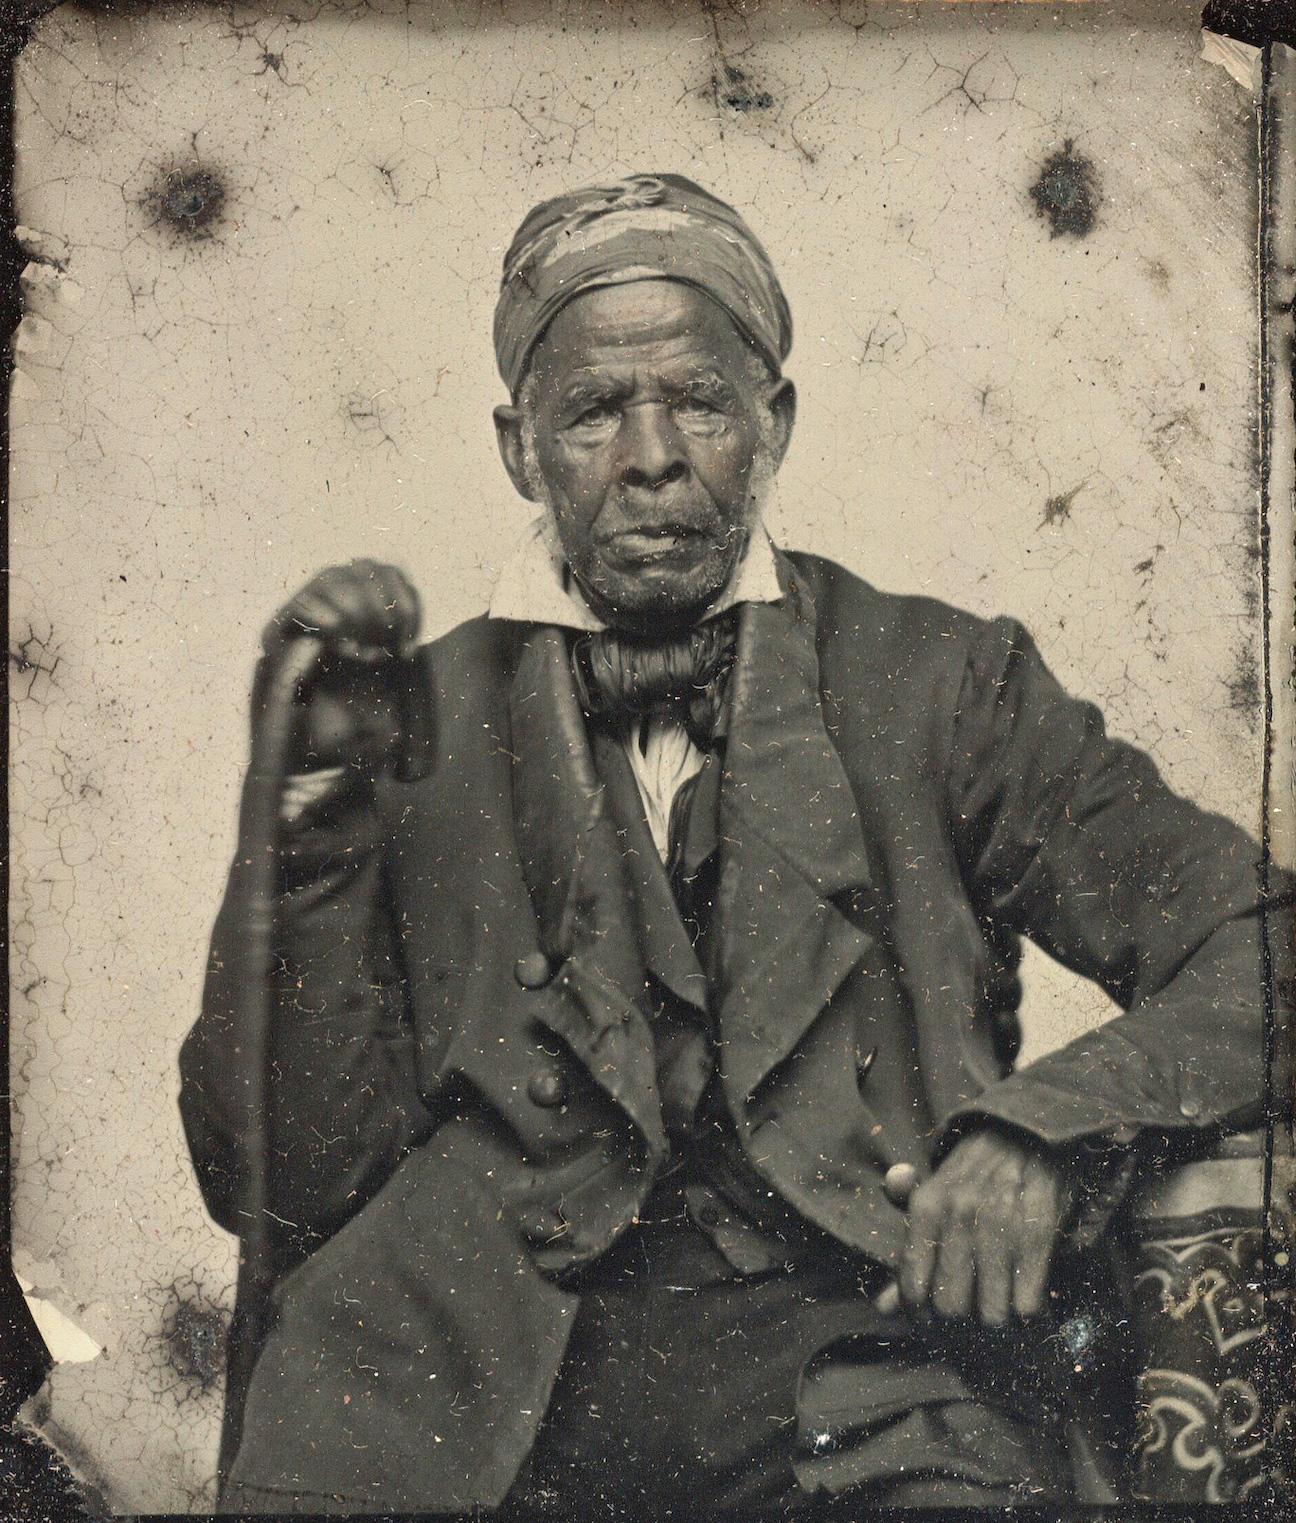 Yamboo: An Enslaved Muslim in Early South Carolina